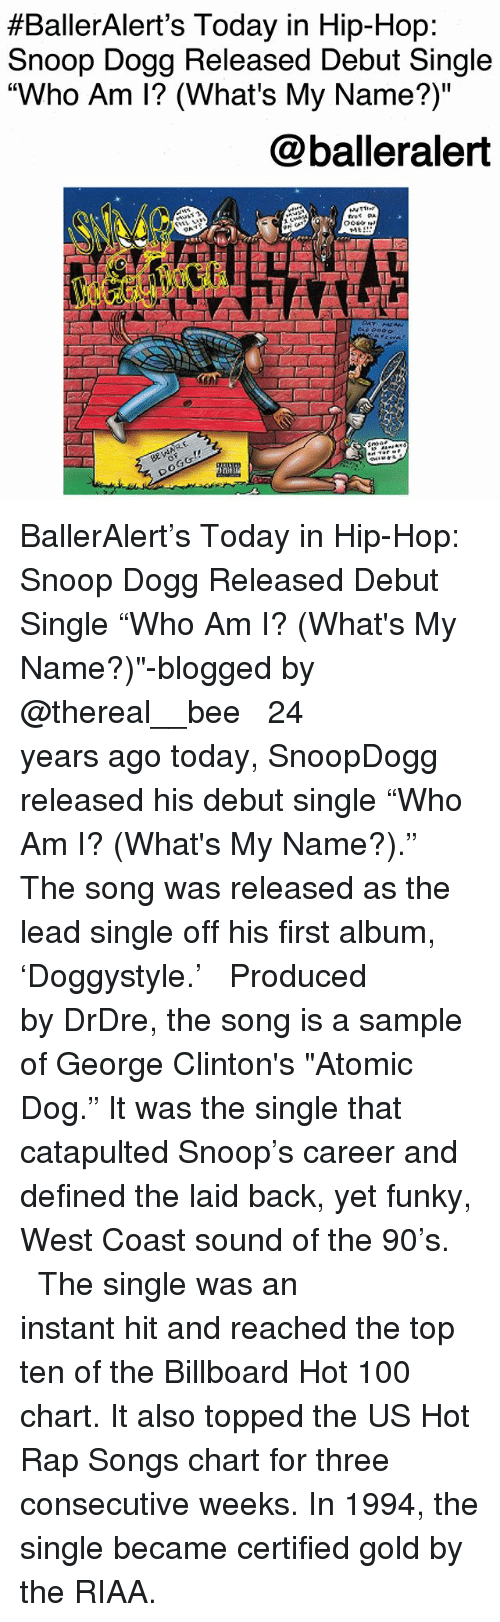 "Anaconda, Billboard, and Memes:  #BallerAlert's Today in Hip-Hop  Snoop Dogg Released Debut Single  ""Who Am I? (What's My Name?)""  @balleralert  TAt  (a BallerAlert's Today in Hip-Hop: Snoop Dogg Released Debut Single ""Who Am I? (What's My Name?)""-blogged by @thereal__bee ⠀⠀⠀⠀⠀⠀⠀⠀⠀ ⠀⠀ 24 years ago today, SnoopDogg released his debut single ""Who Am I? (What's My Name?)."" The song was released as the lead single off his first album, 'Doggystyle.' ⠀⠀⠀⠀⠀⠀⠀⠀⠀ ⠀⠀ Produced by DrDre, the song is a sample of George Clinton's ""Atomic Dog."" It was the single that catapulted Snoop's career and defined the laid back, yet funky, West Coast sound of the 90's. ⠀⠀⠀⠀⠀⠀⠀⠀⠀ ⠀⠀ The single was an instant hit and reached the top ten of the Billboard Hot 100 chart. It also topped the US Hot Rap Songs chart for three consecutive weeks. In 1994, the single became certified gold by the RIAA."